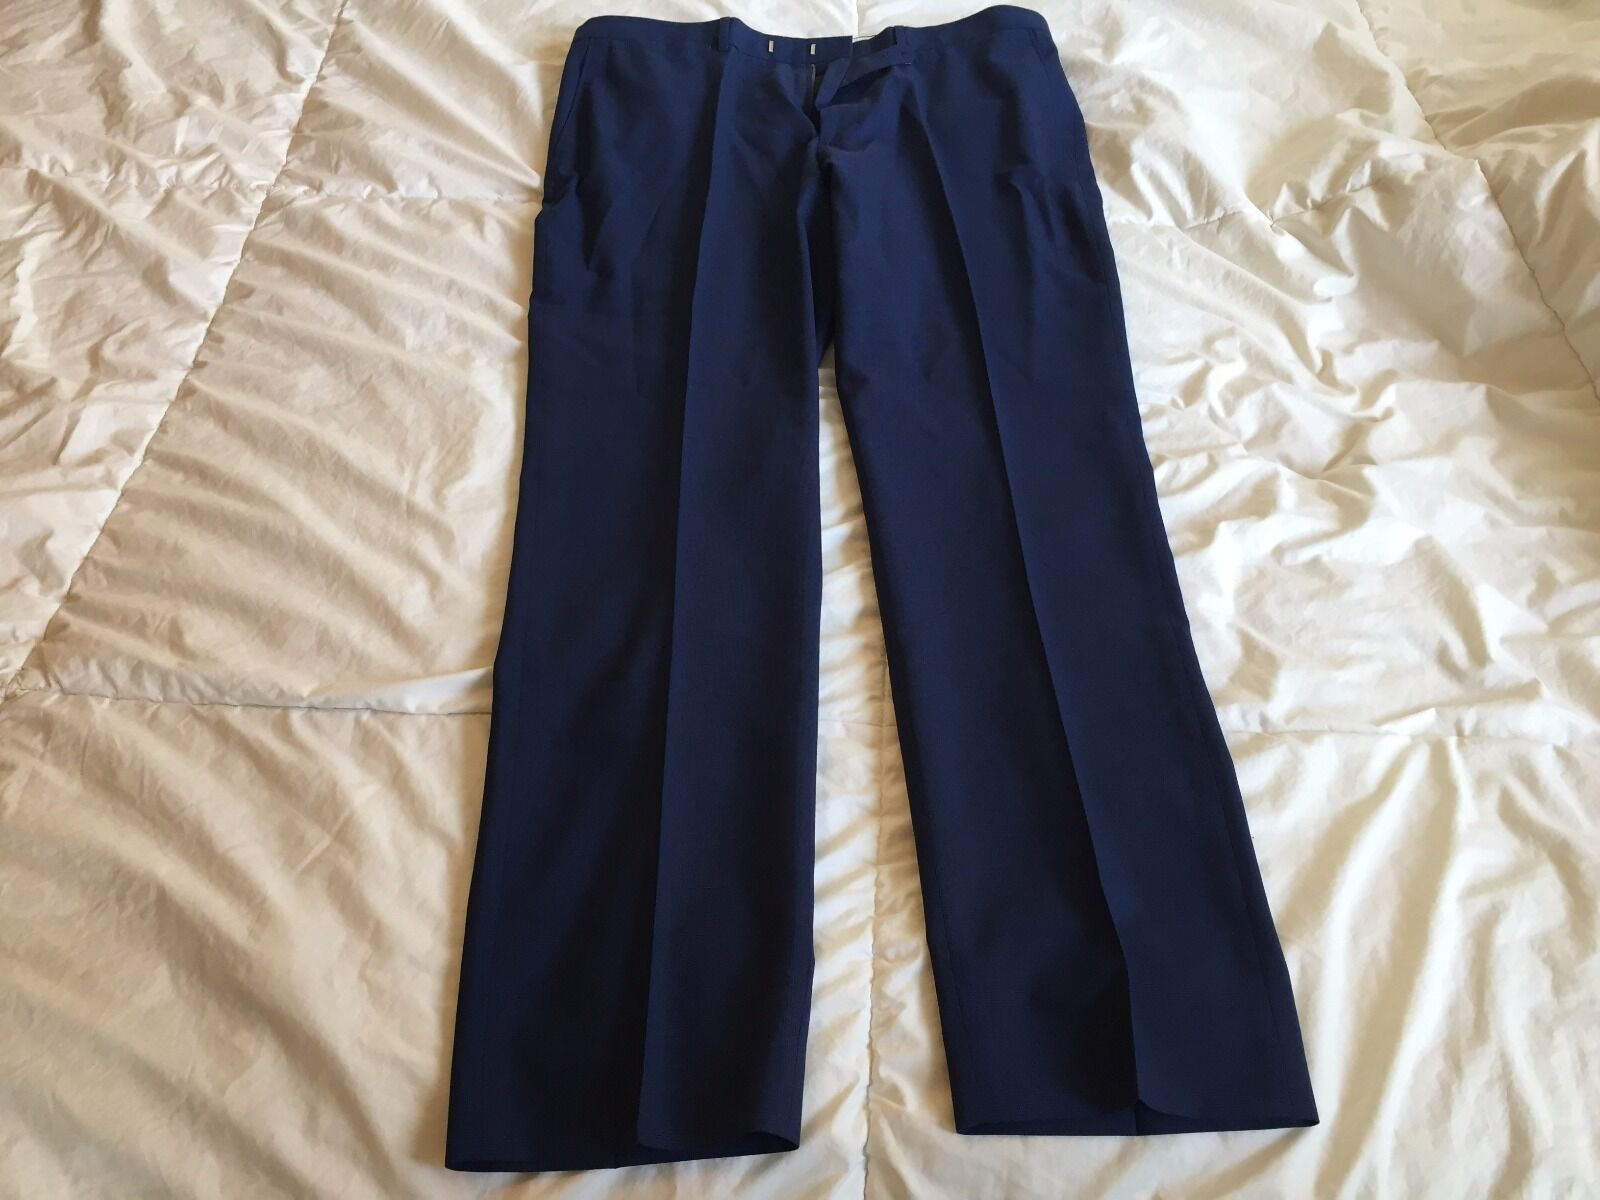 J.Crew Bowery Slim Pant in Italian Four-Season Wool, Bright Navy, 30X32, See Pic